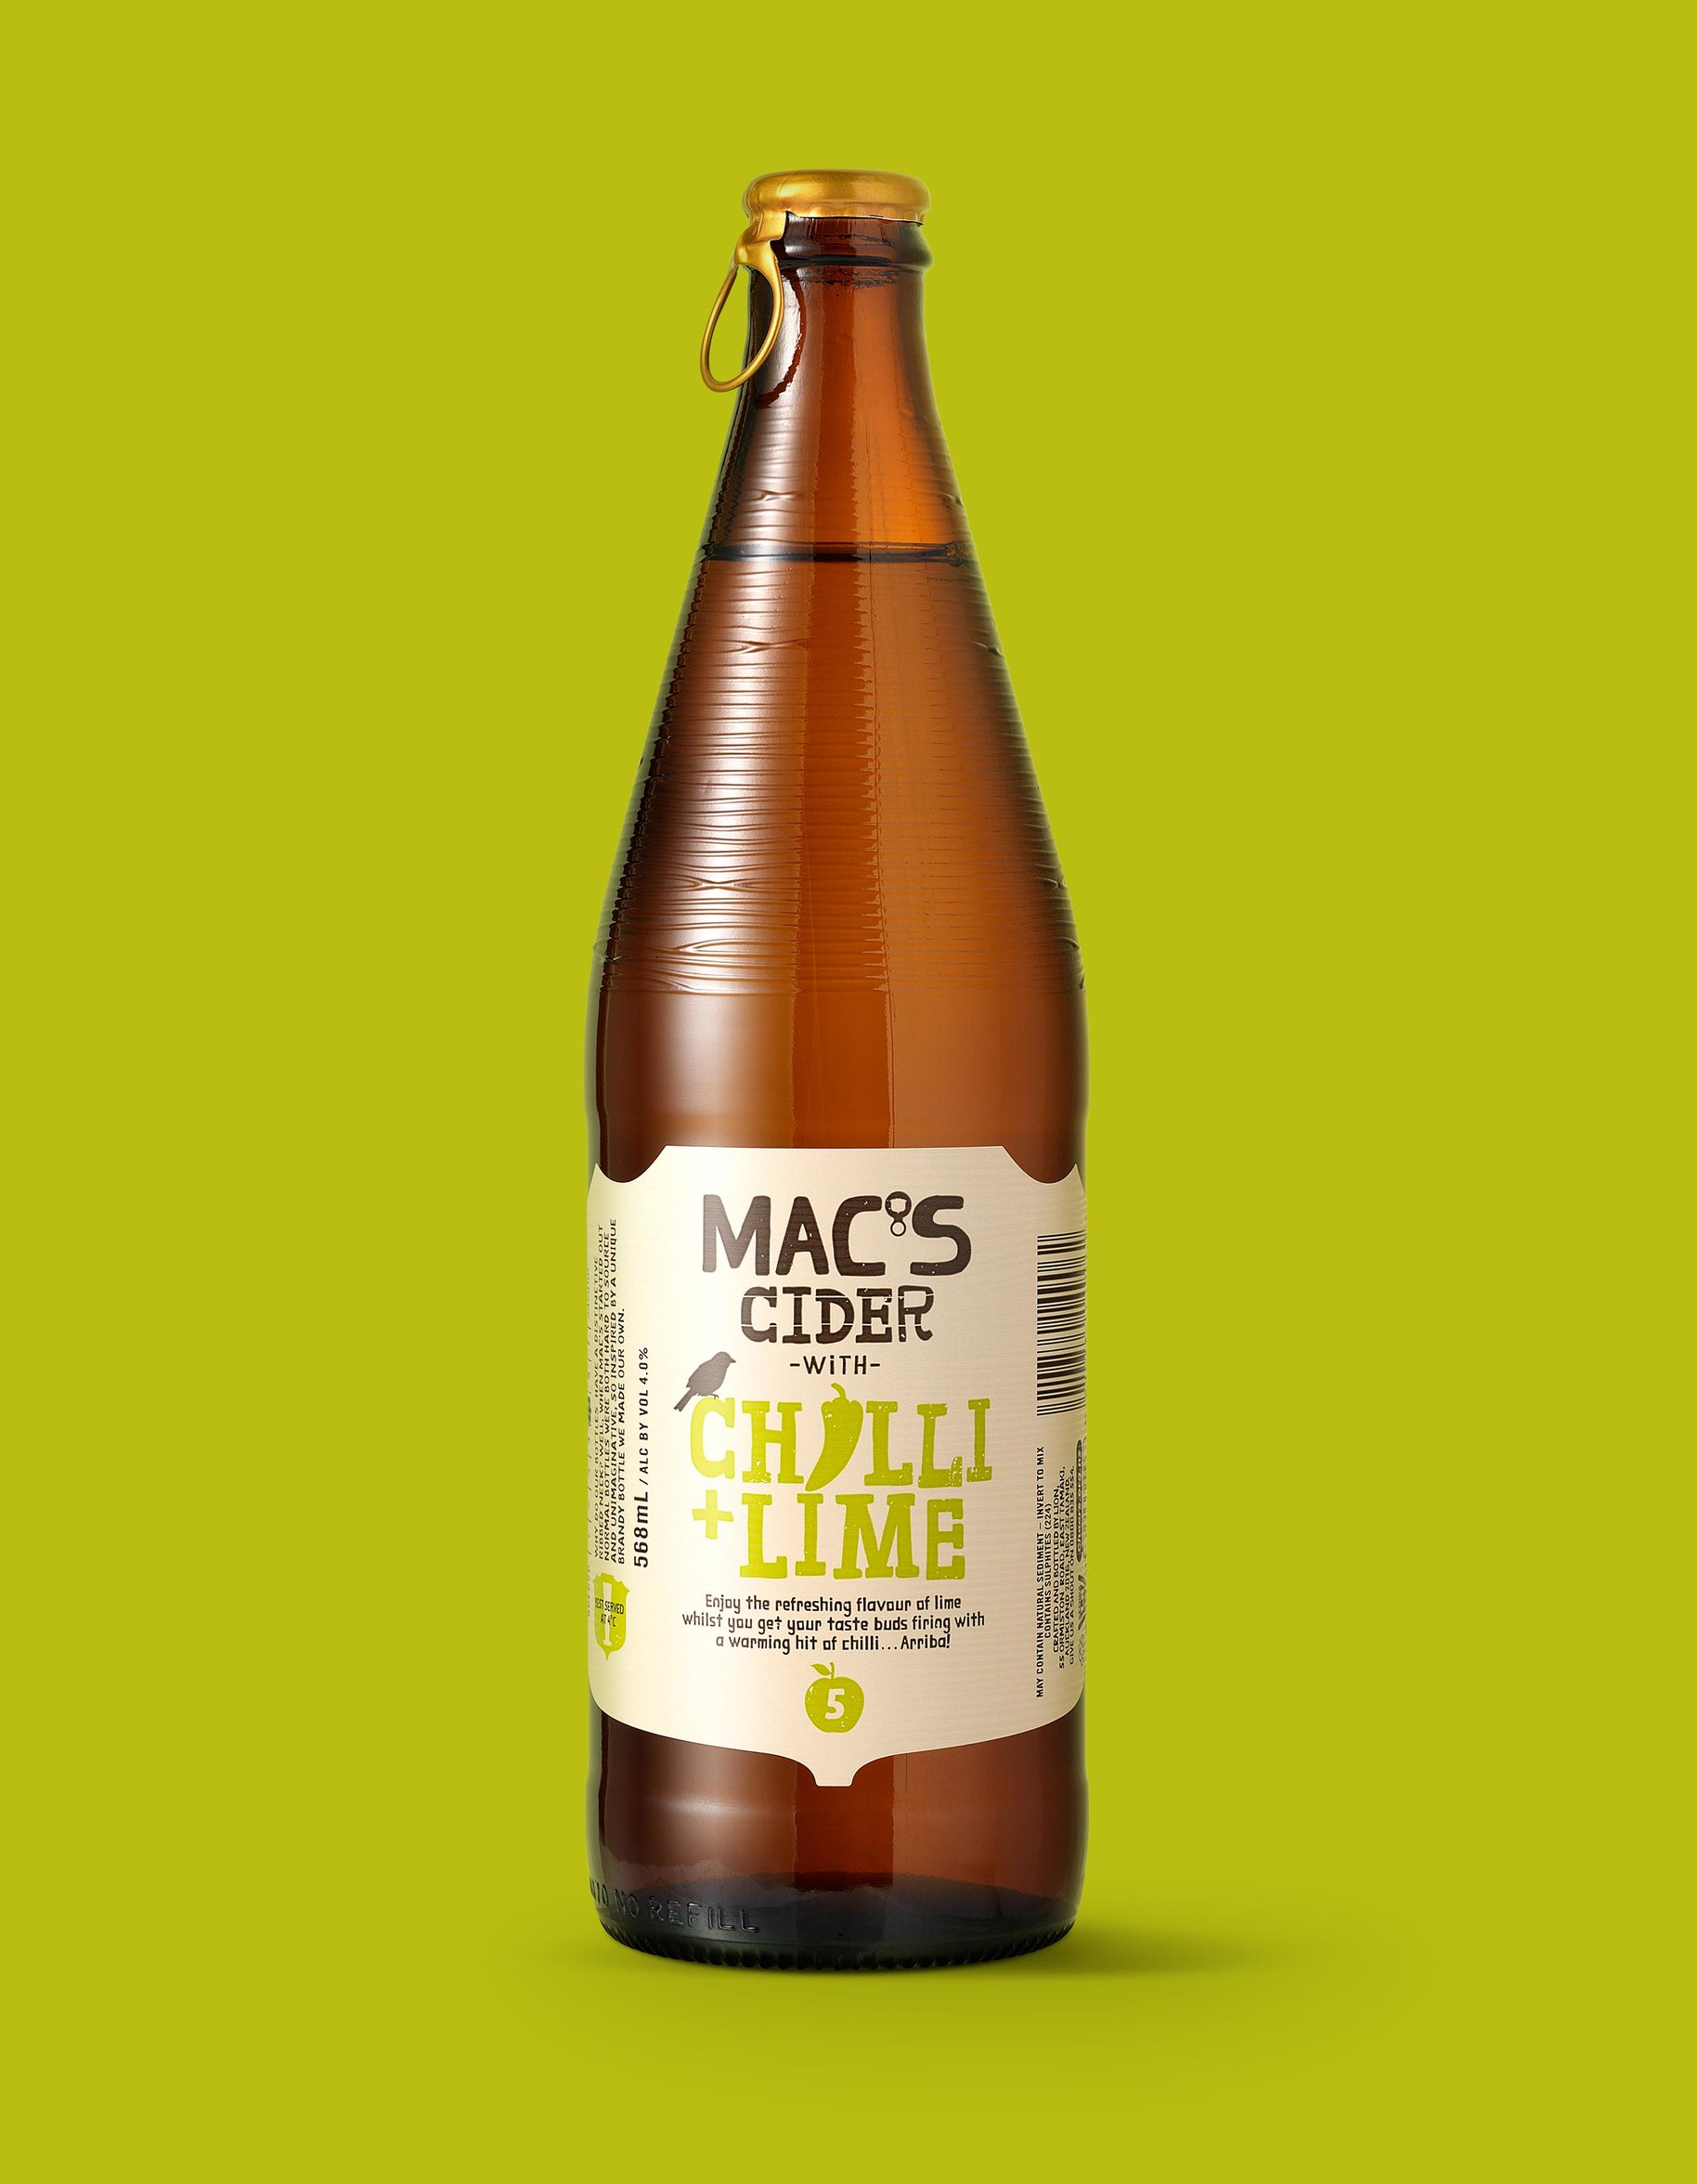 Macs Beer chilli and lime cider packaging